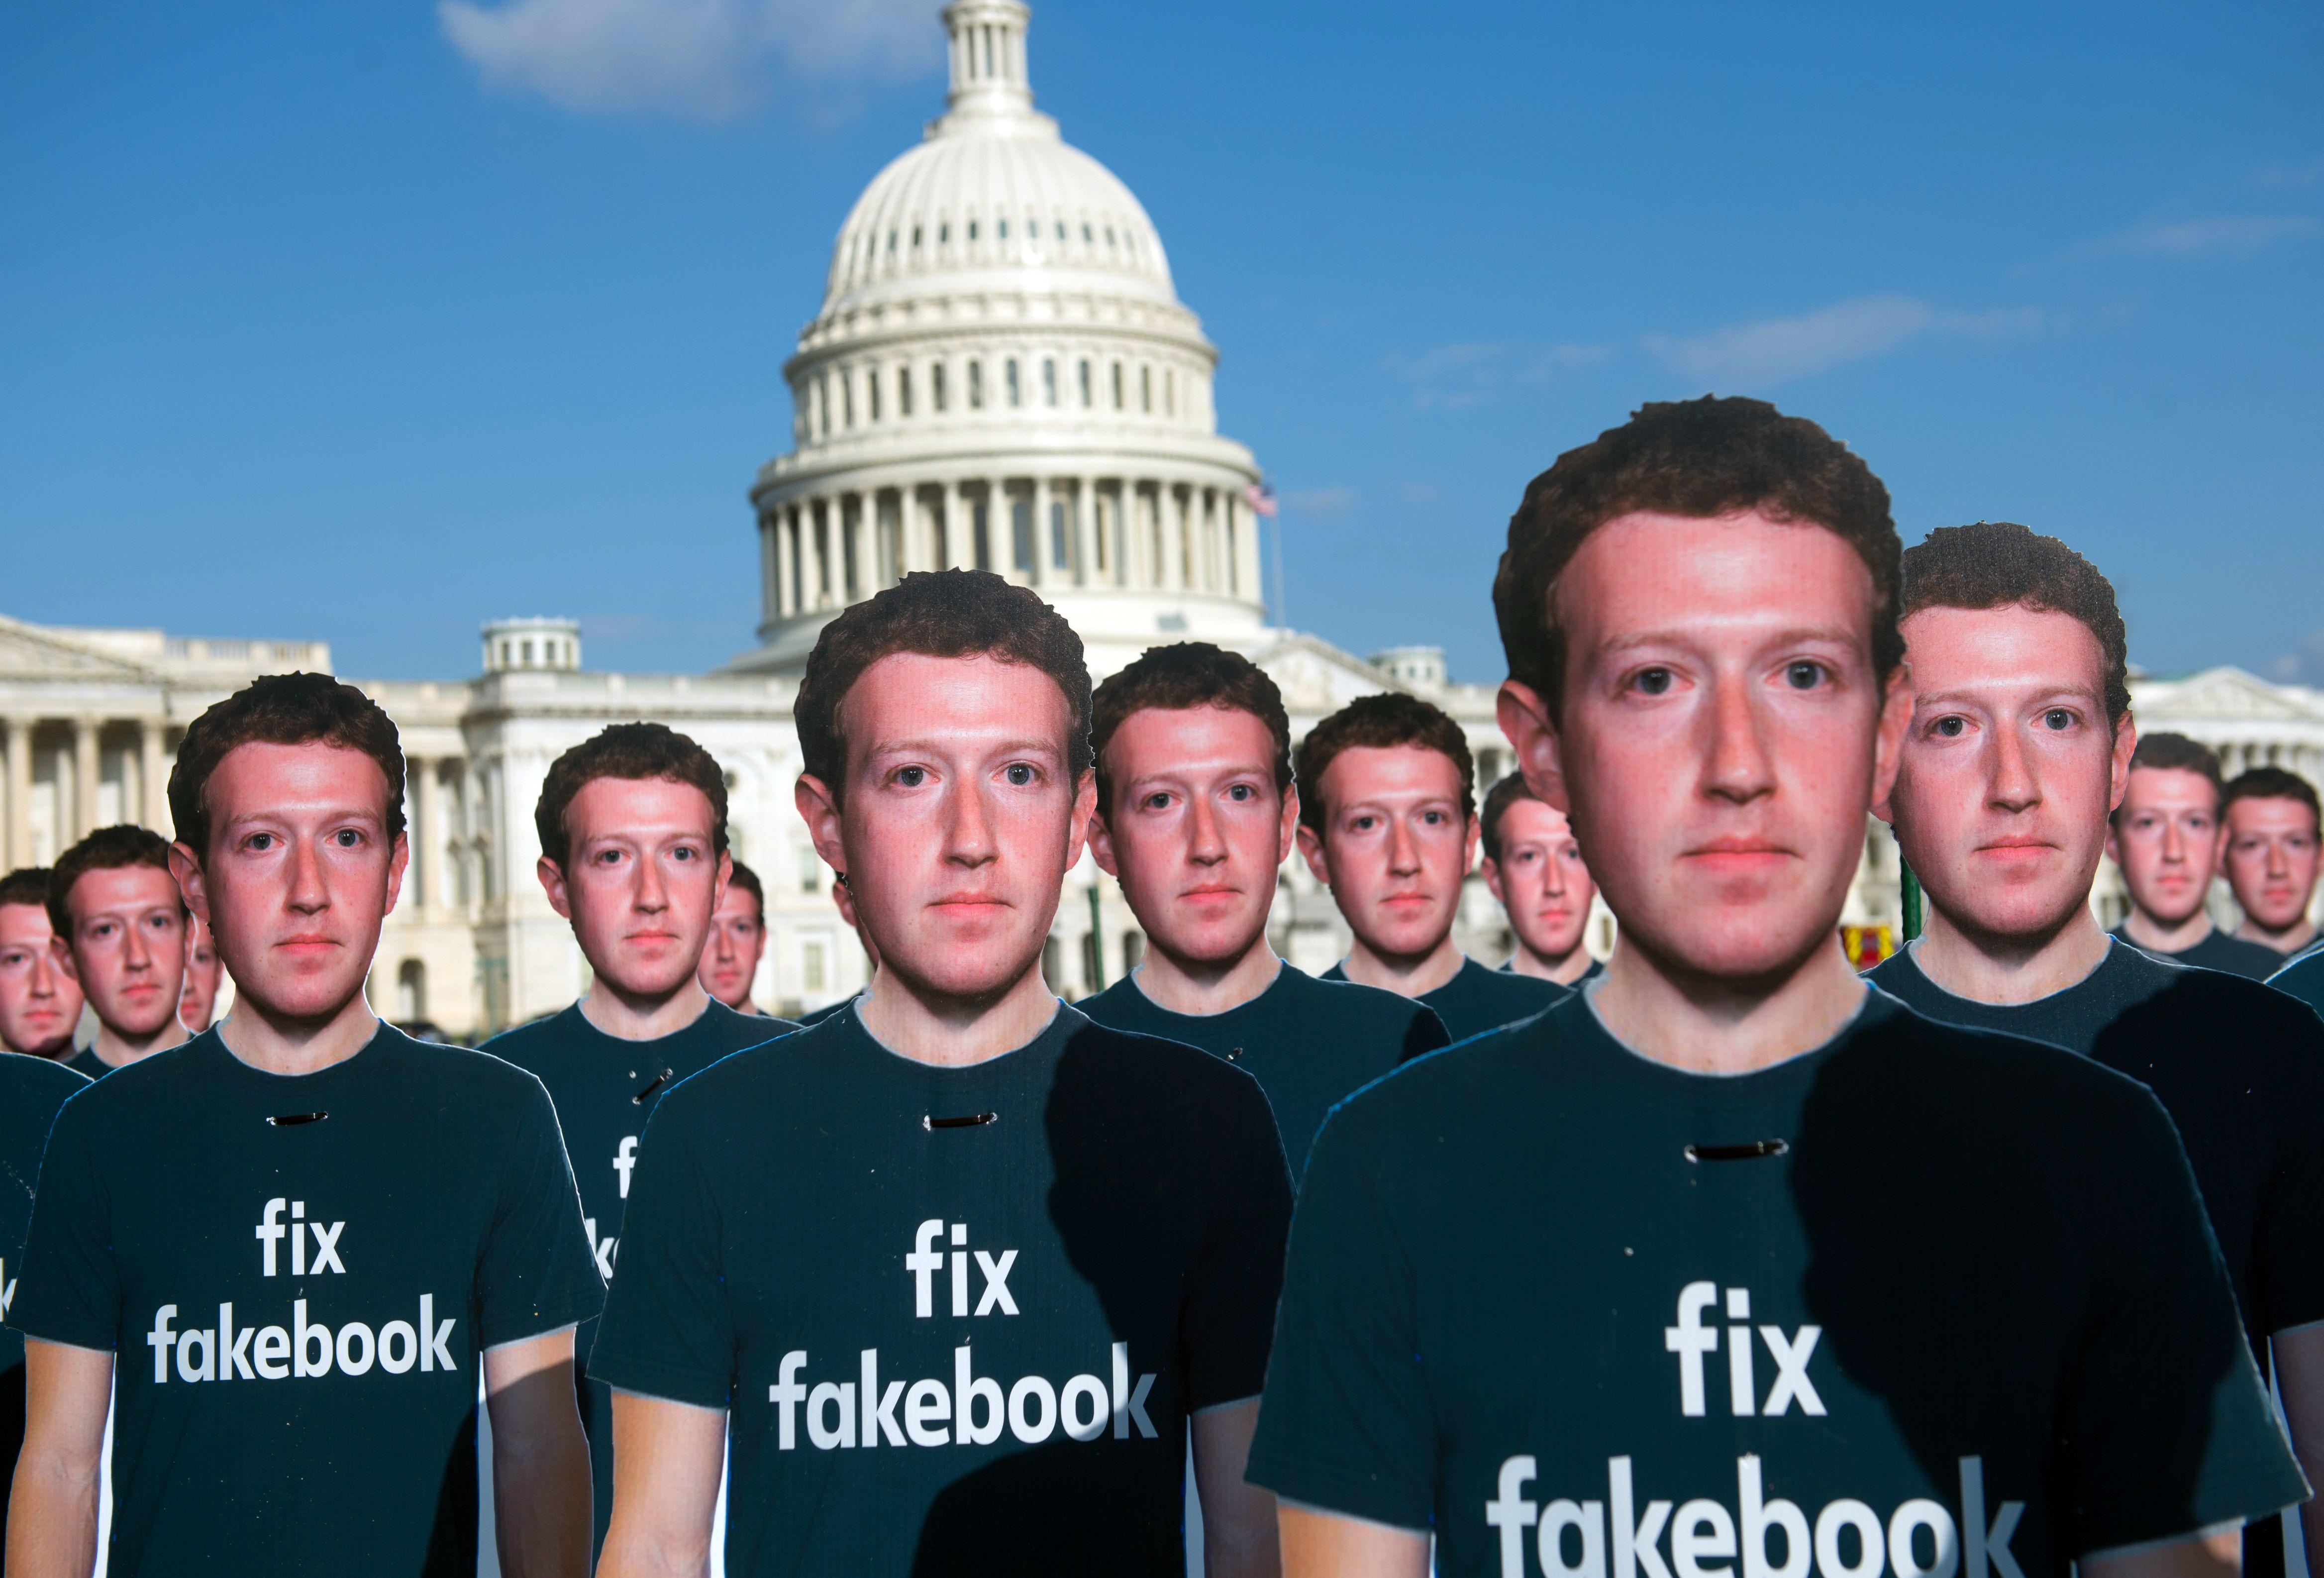 Cardboard cutouts of Mark Zuckerberg with the US Capitol building in the background.